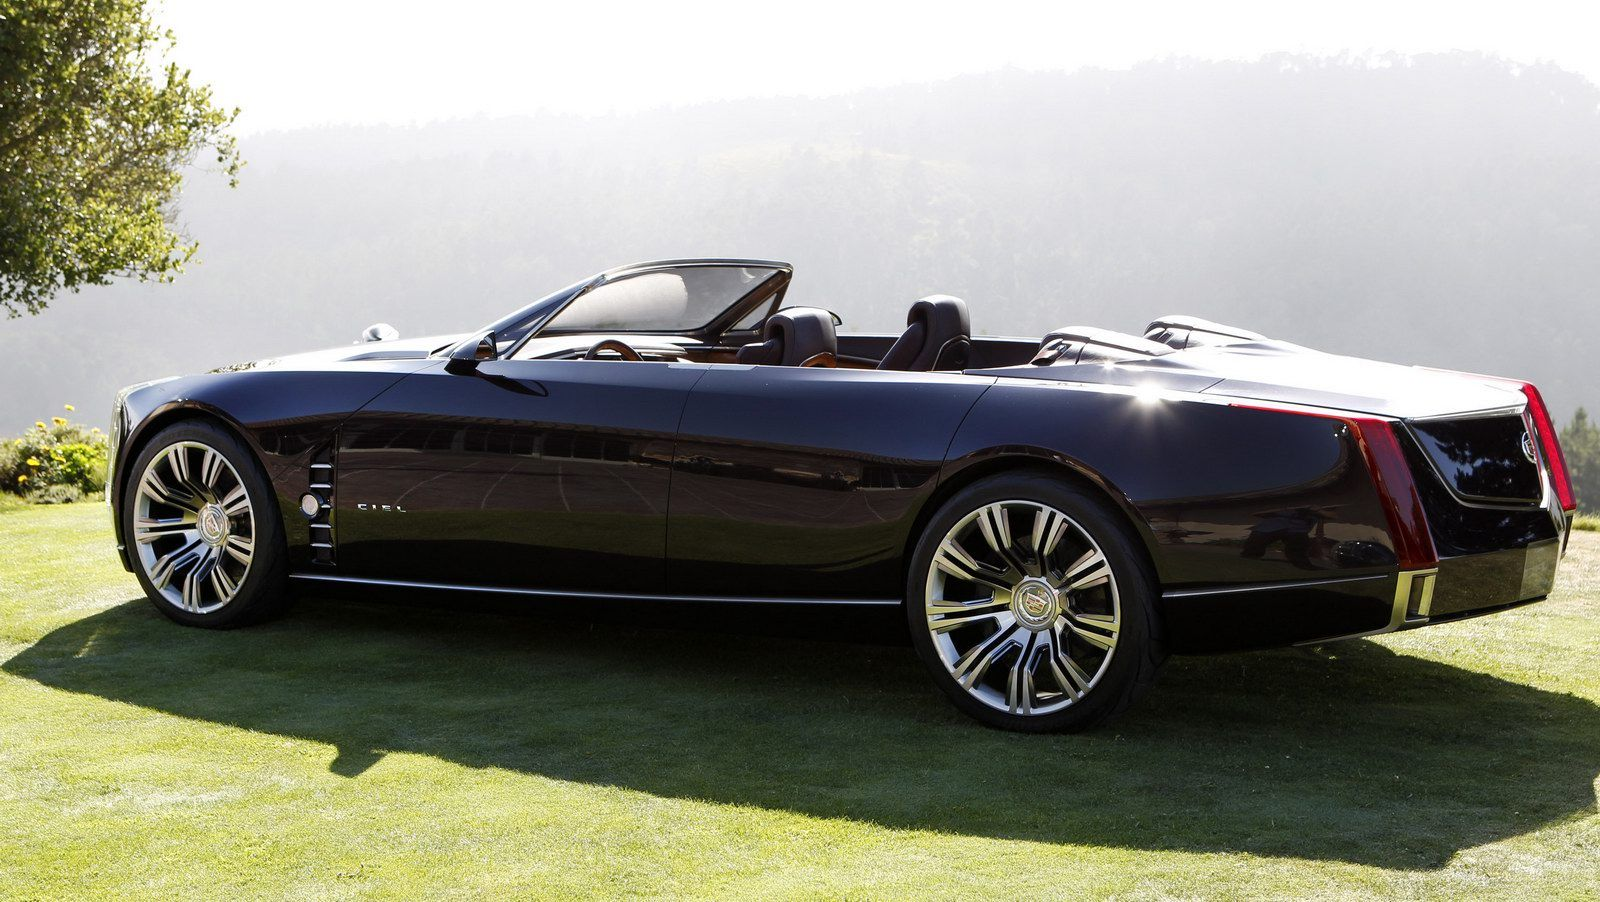 Cadillac Convertible 2015 >> 2015 Cadillac Convertible The Ciel Was Developed At Gm S North